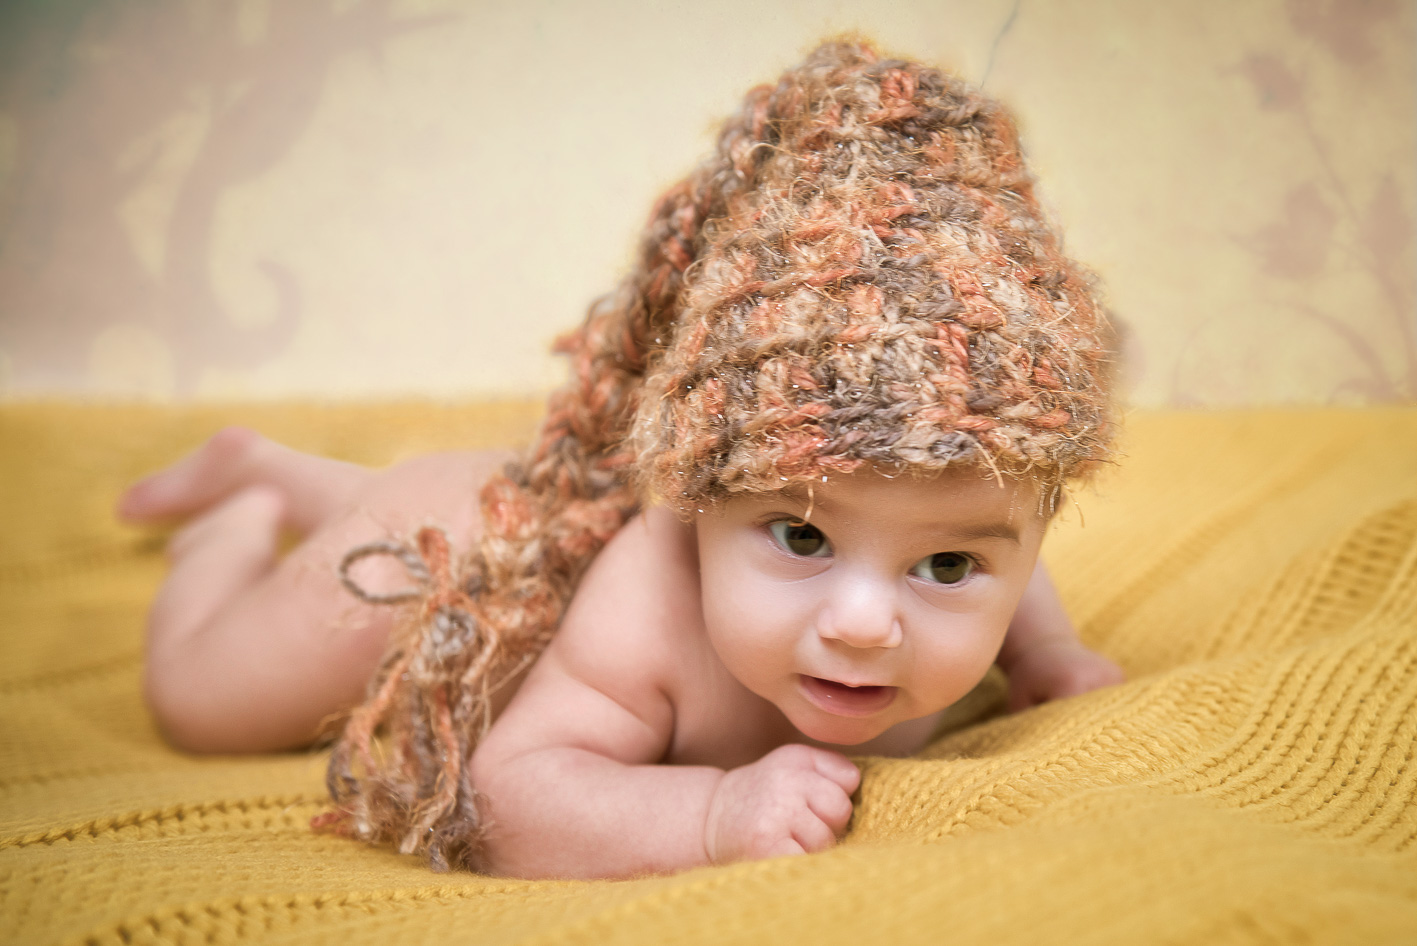 newborn-photo-tagg-photography-8